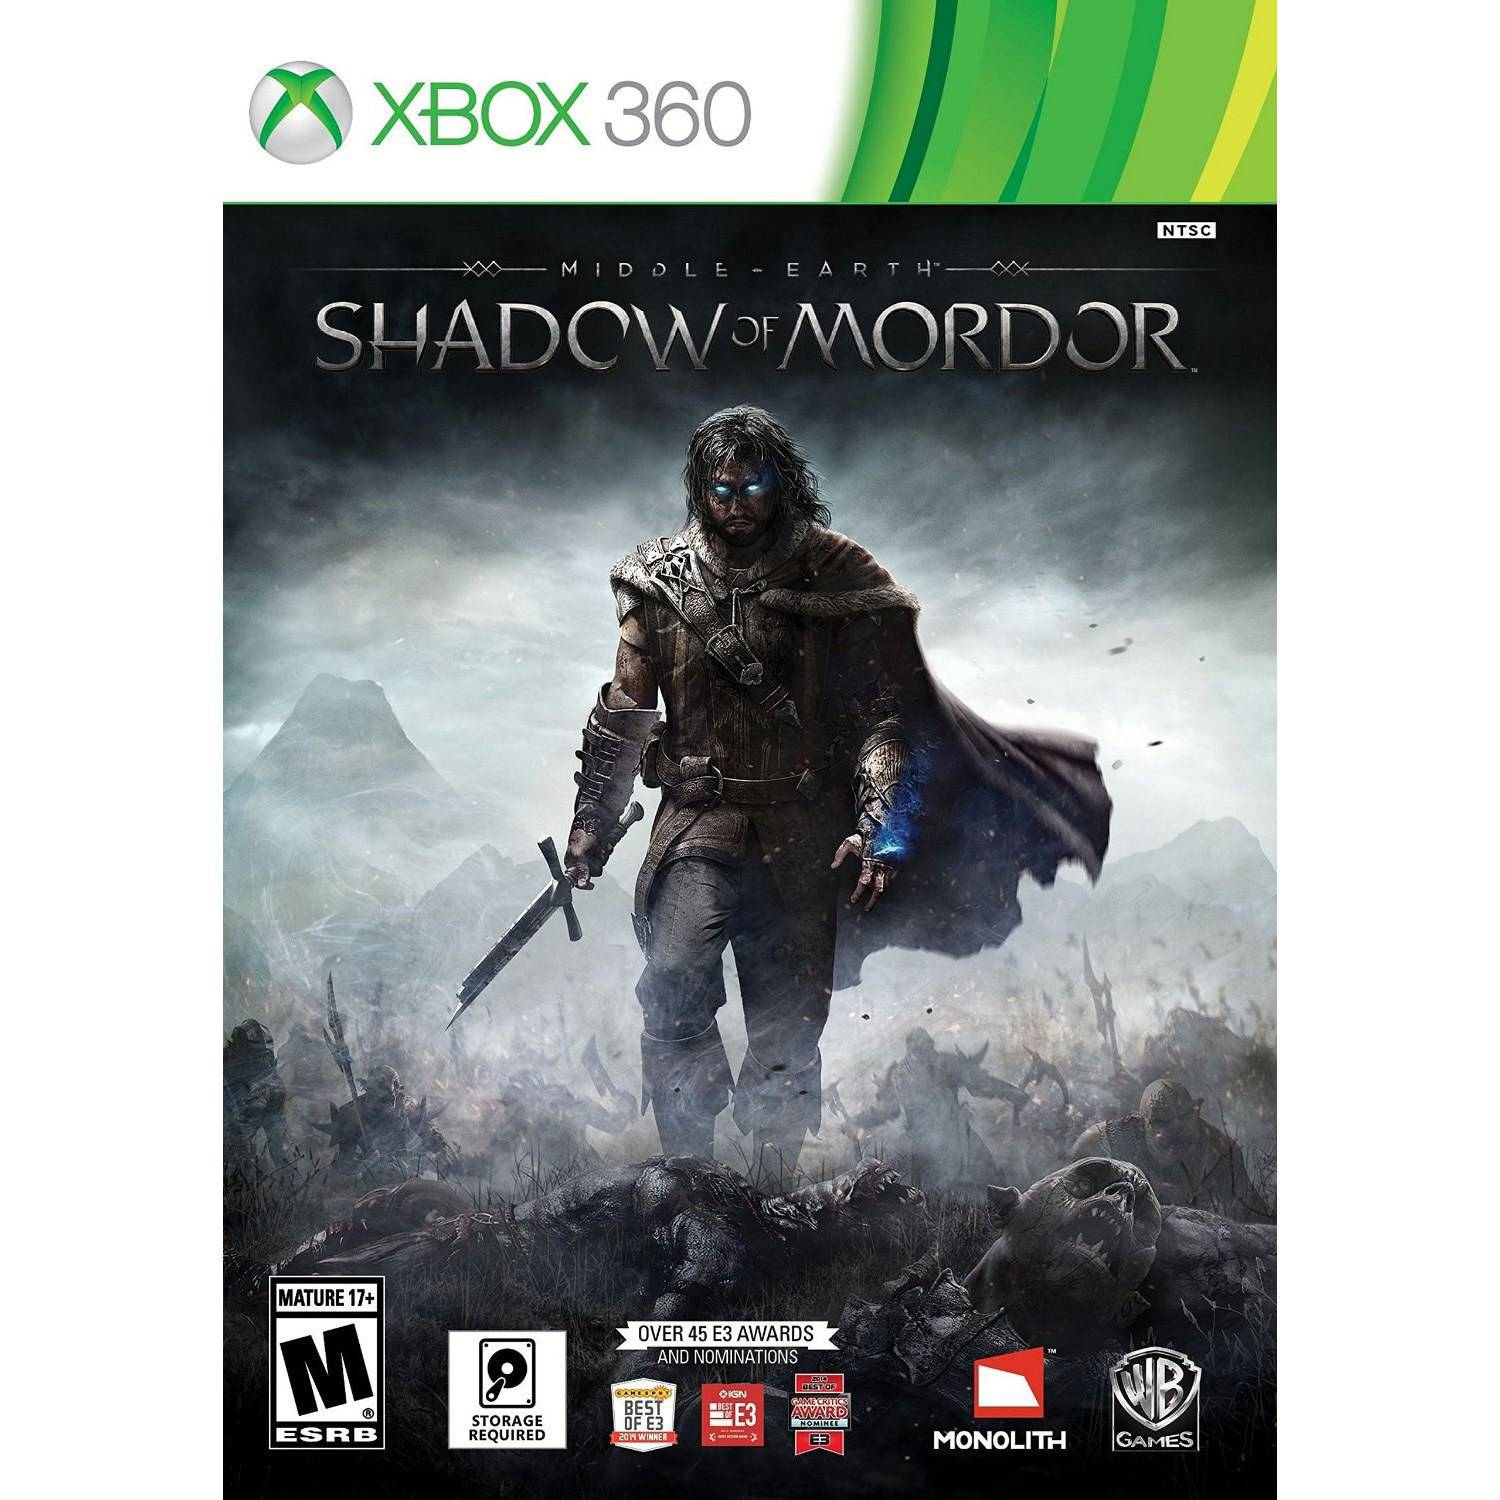 Middle Earth: Shadow of Mordor(Xbox 360) - Pre-Owned